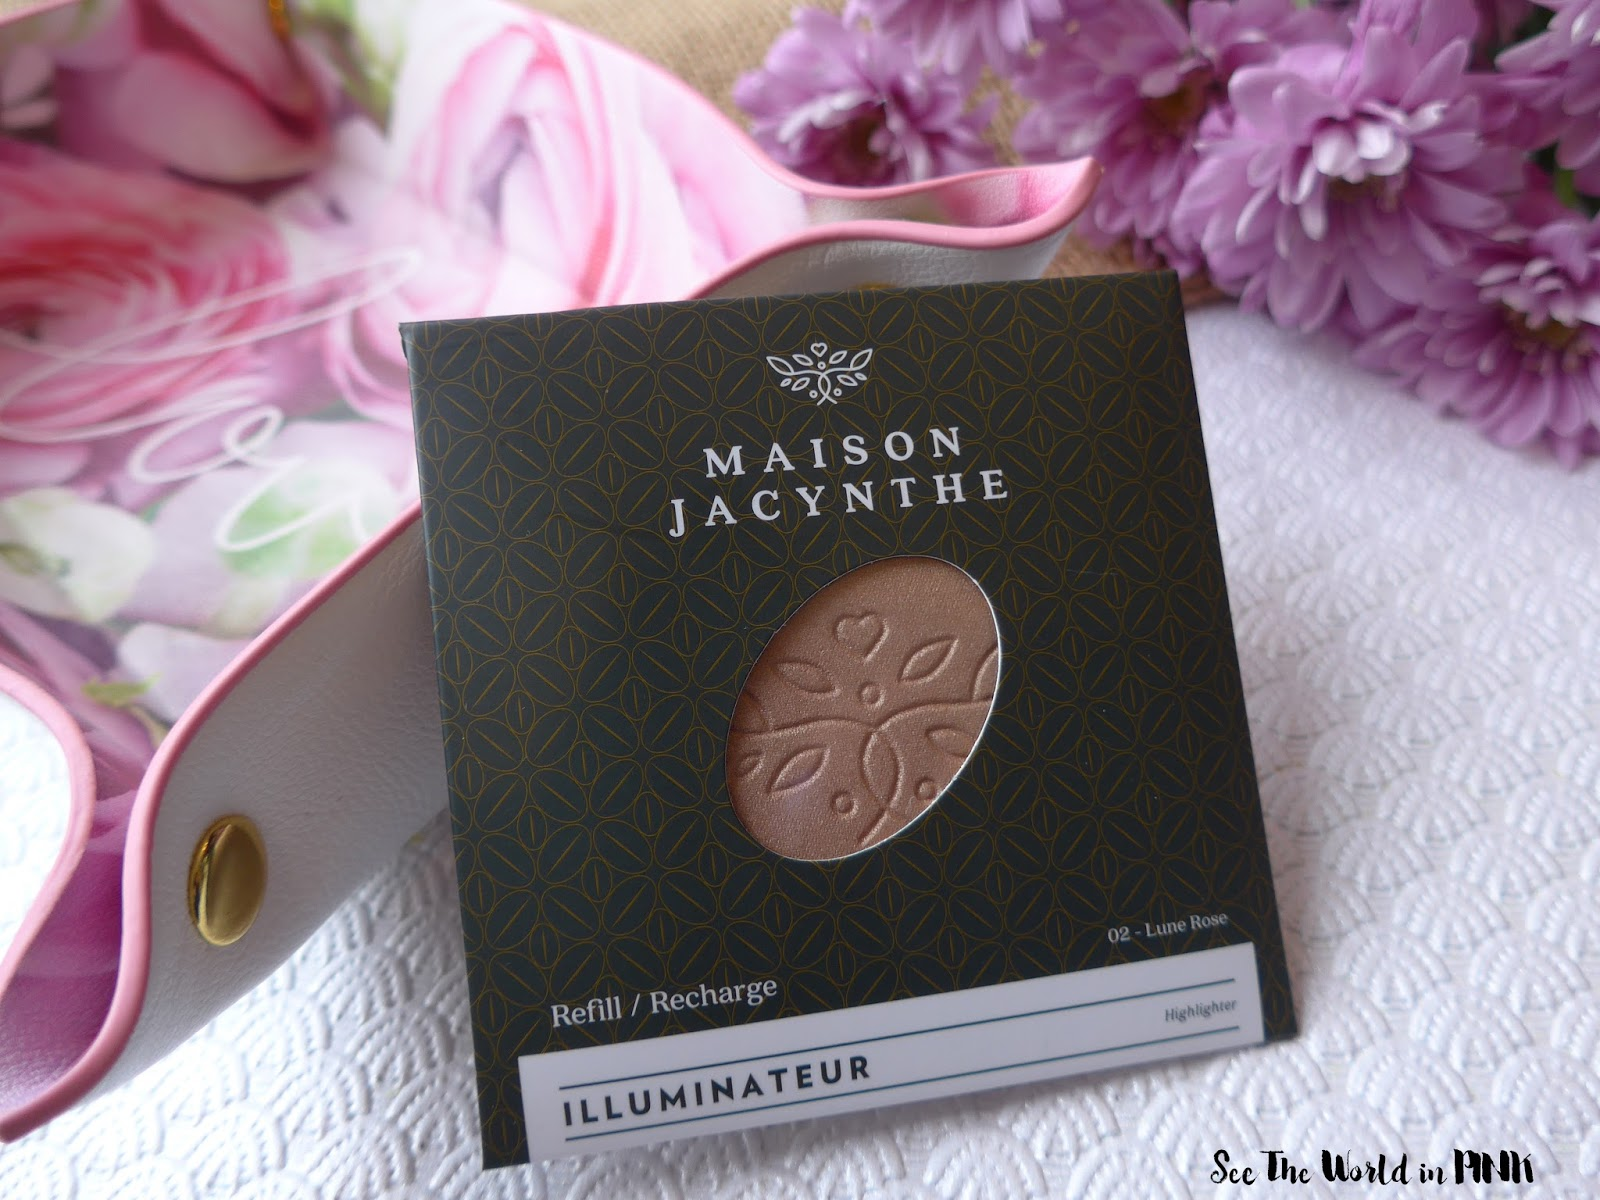 Maison Jacynthe Makeup - Foundation and Illuminator Try-on, Swatches and Reviews!